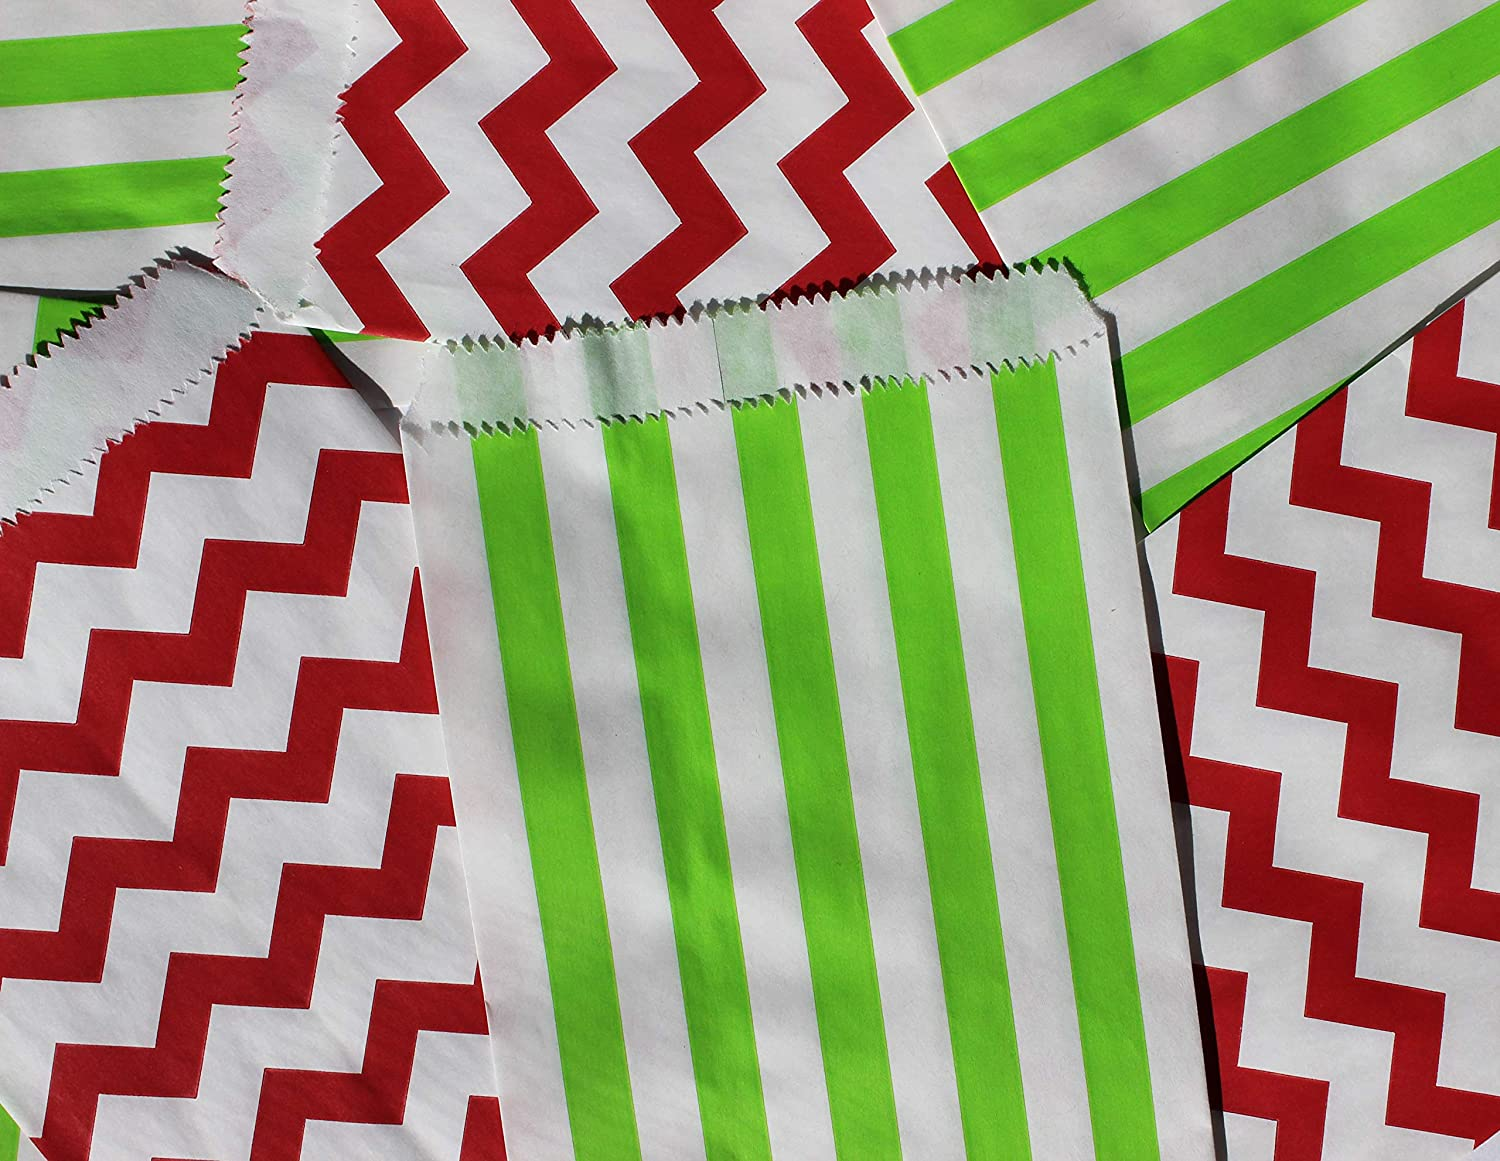 Bakers Bling Red and Green Stripe Holiday Party Treat Bags with Stickers, 5.5' W x 7.5' H, Set of 48 Red Chevron Stripe and Green Stripe Treat Bags and 48 Sticker